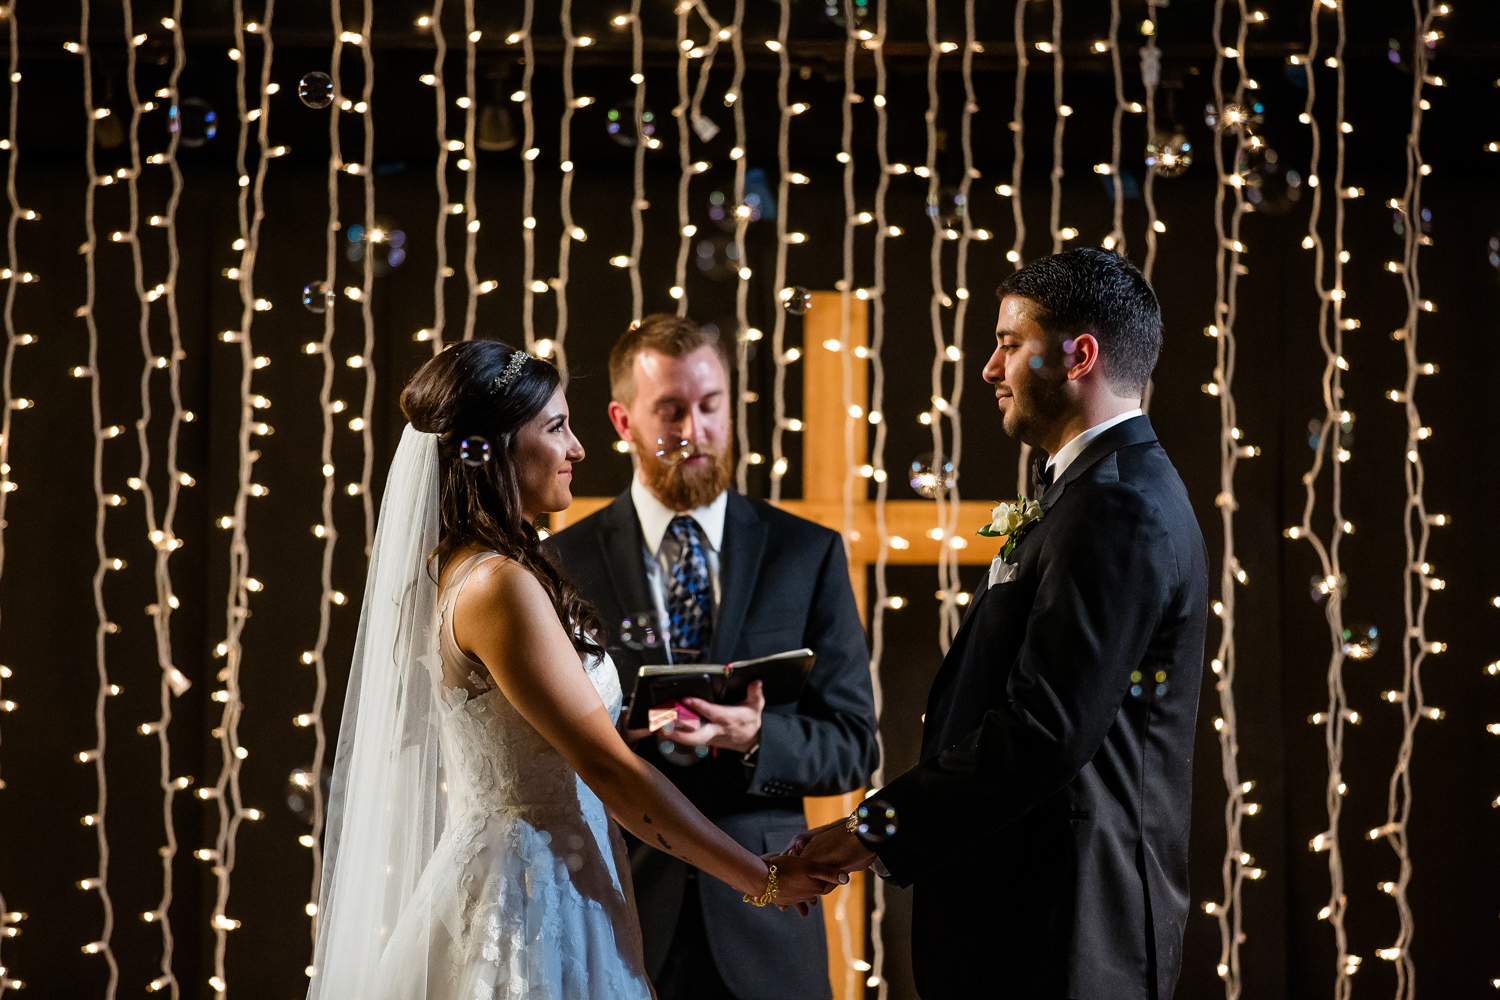 Peoria Wedding ceremony with bubbles and string lights